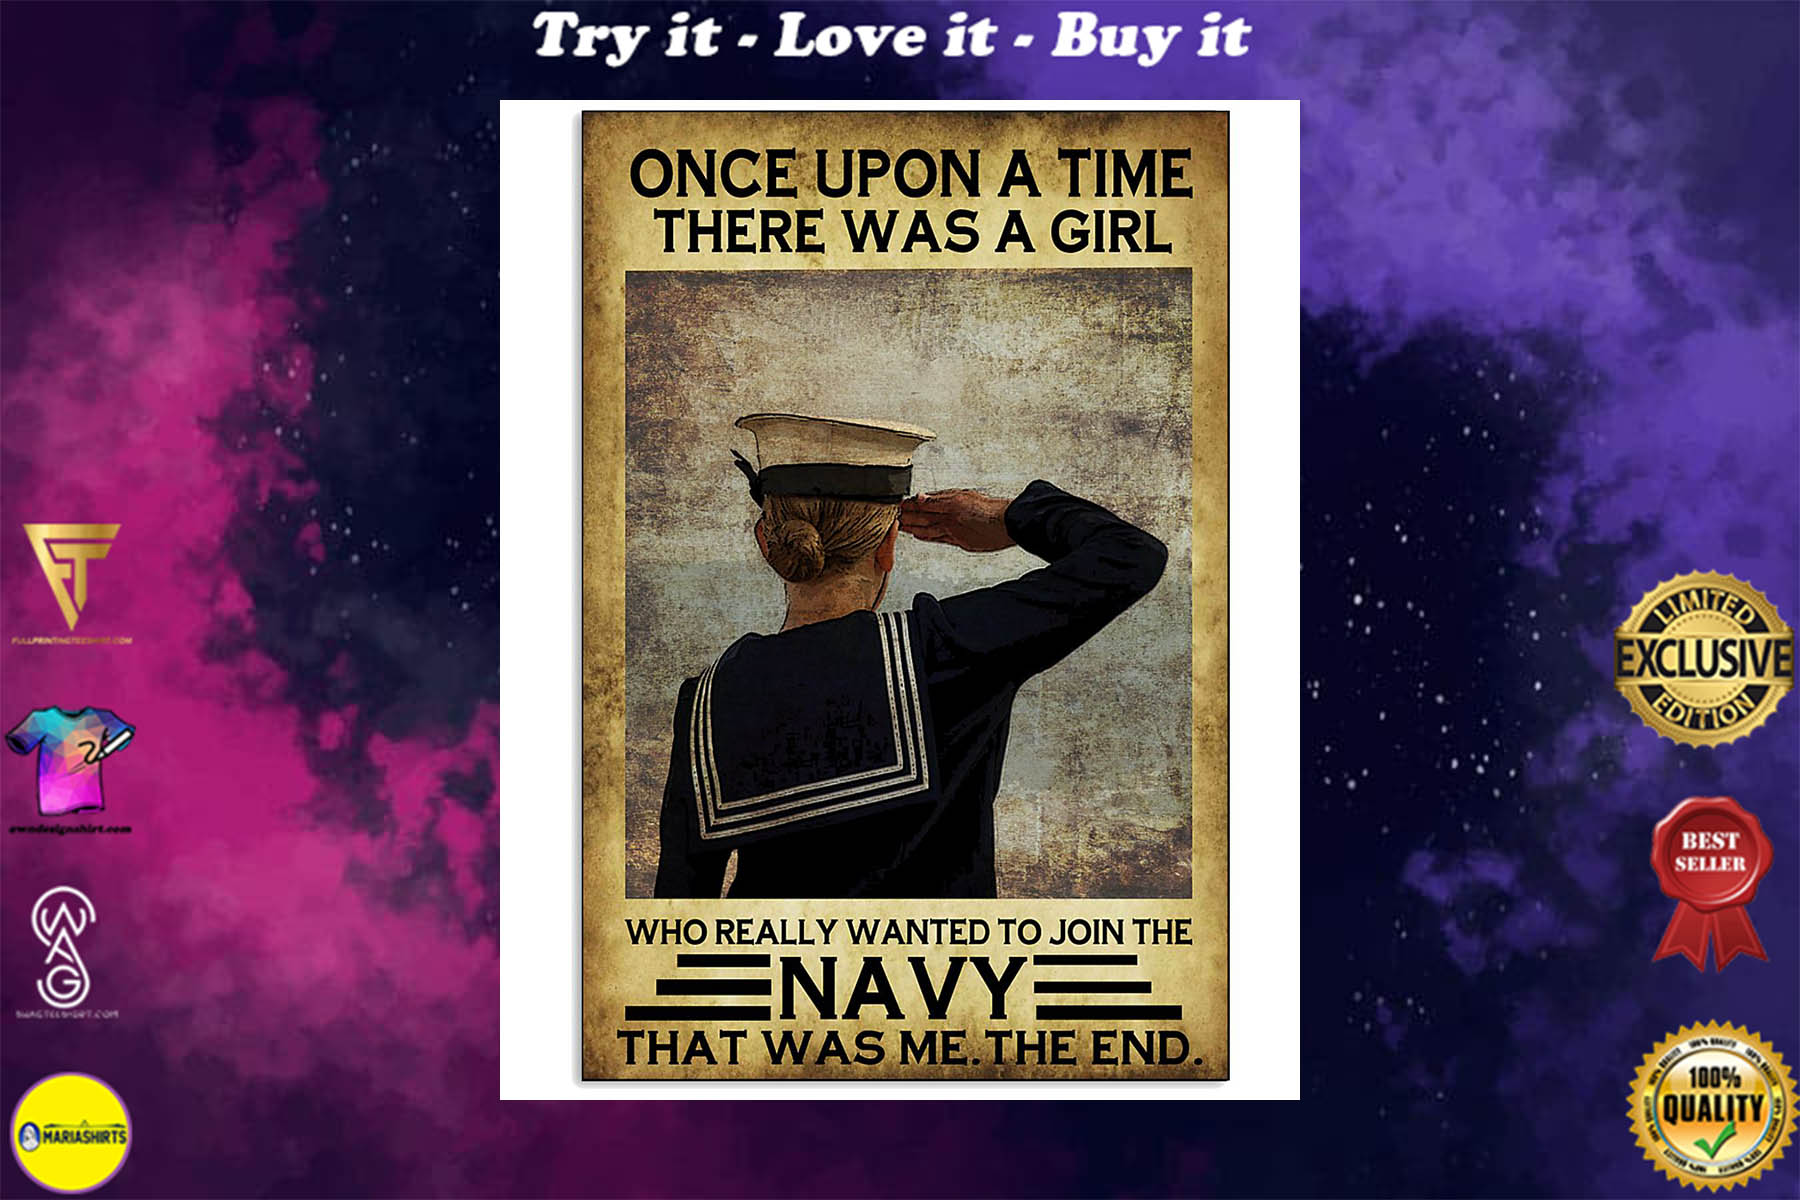 once upon a time there was a girl who really wanted to join the navy retro poster